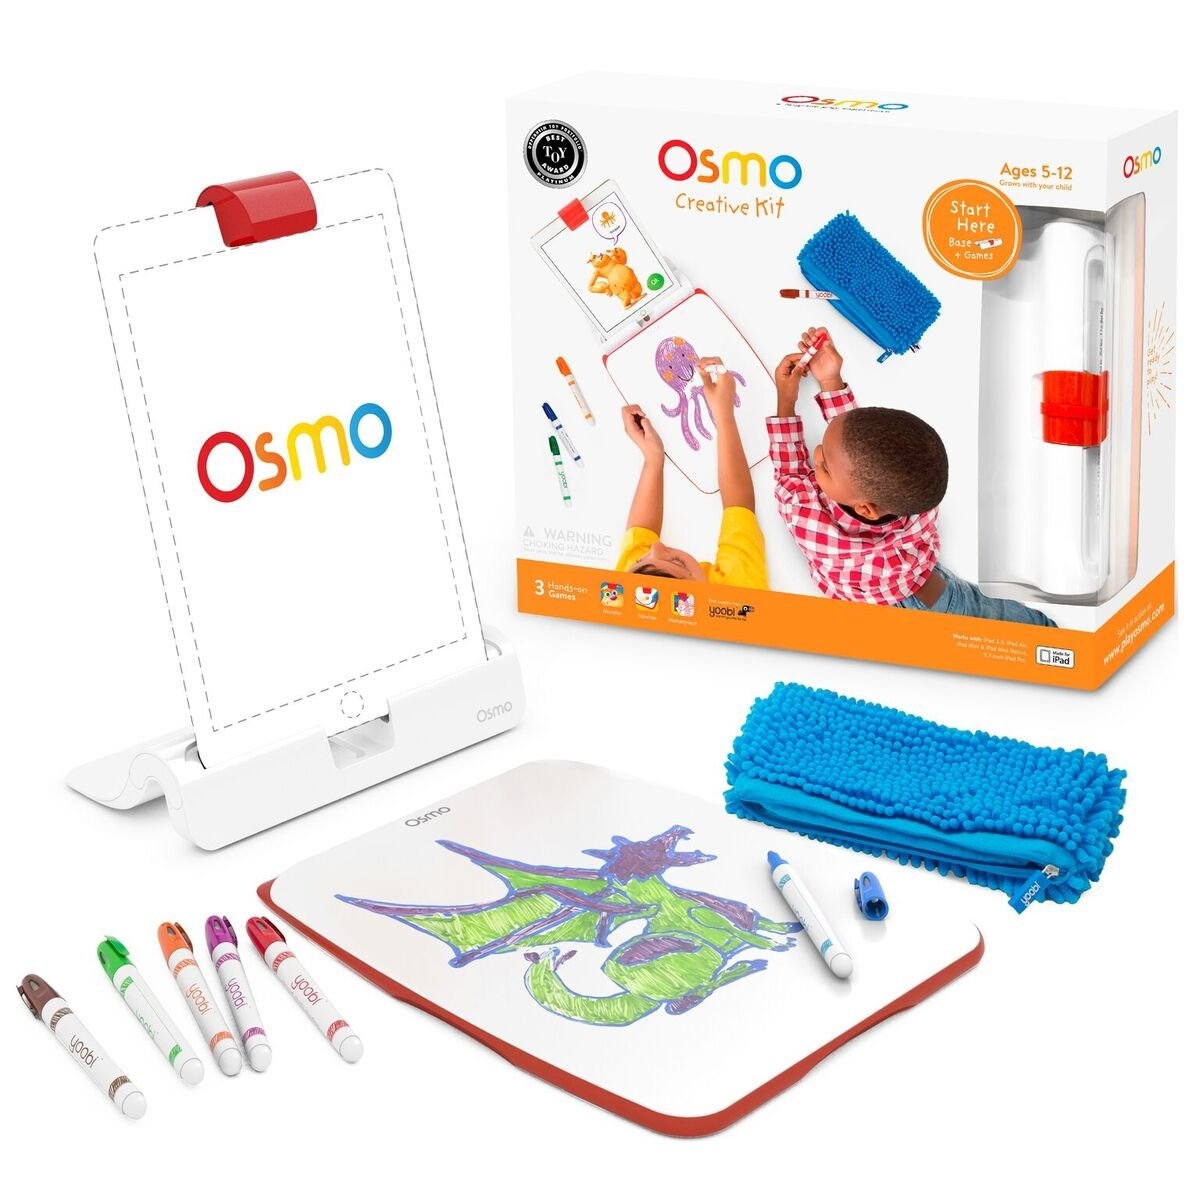 Osmo Creative Kit with Monster Game (Ipad Base Included) by Osmo (Image #6)